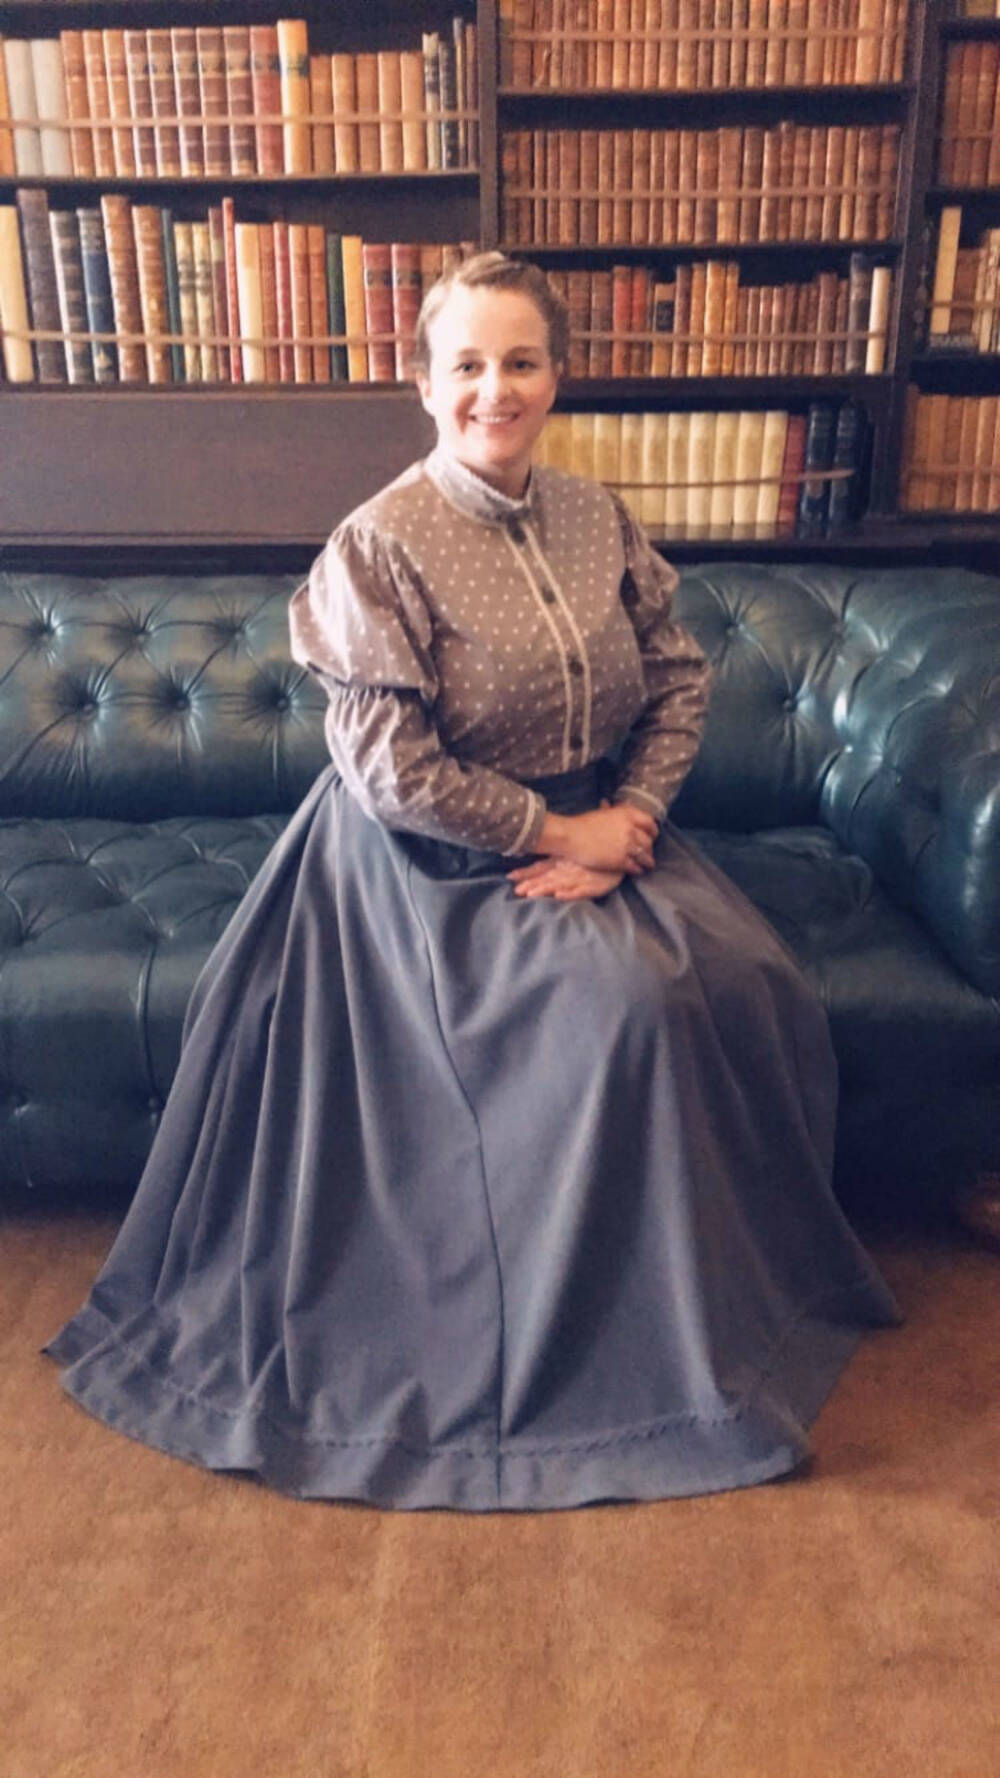 Woman in period costume sitting on a chesterfield sofa in front of a bookcase